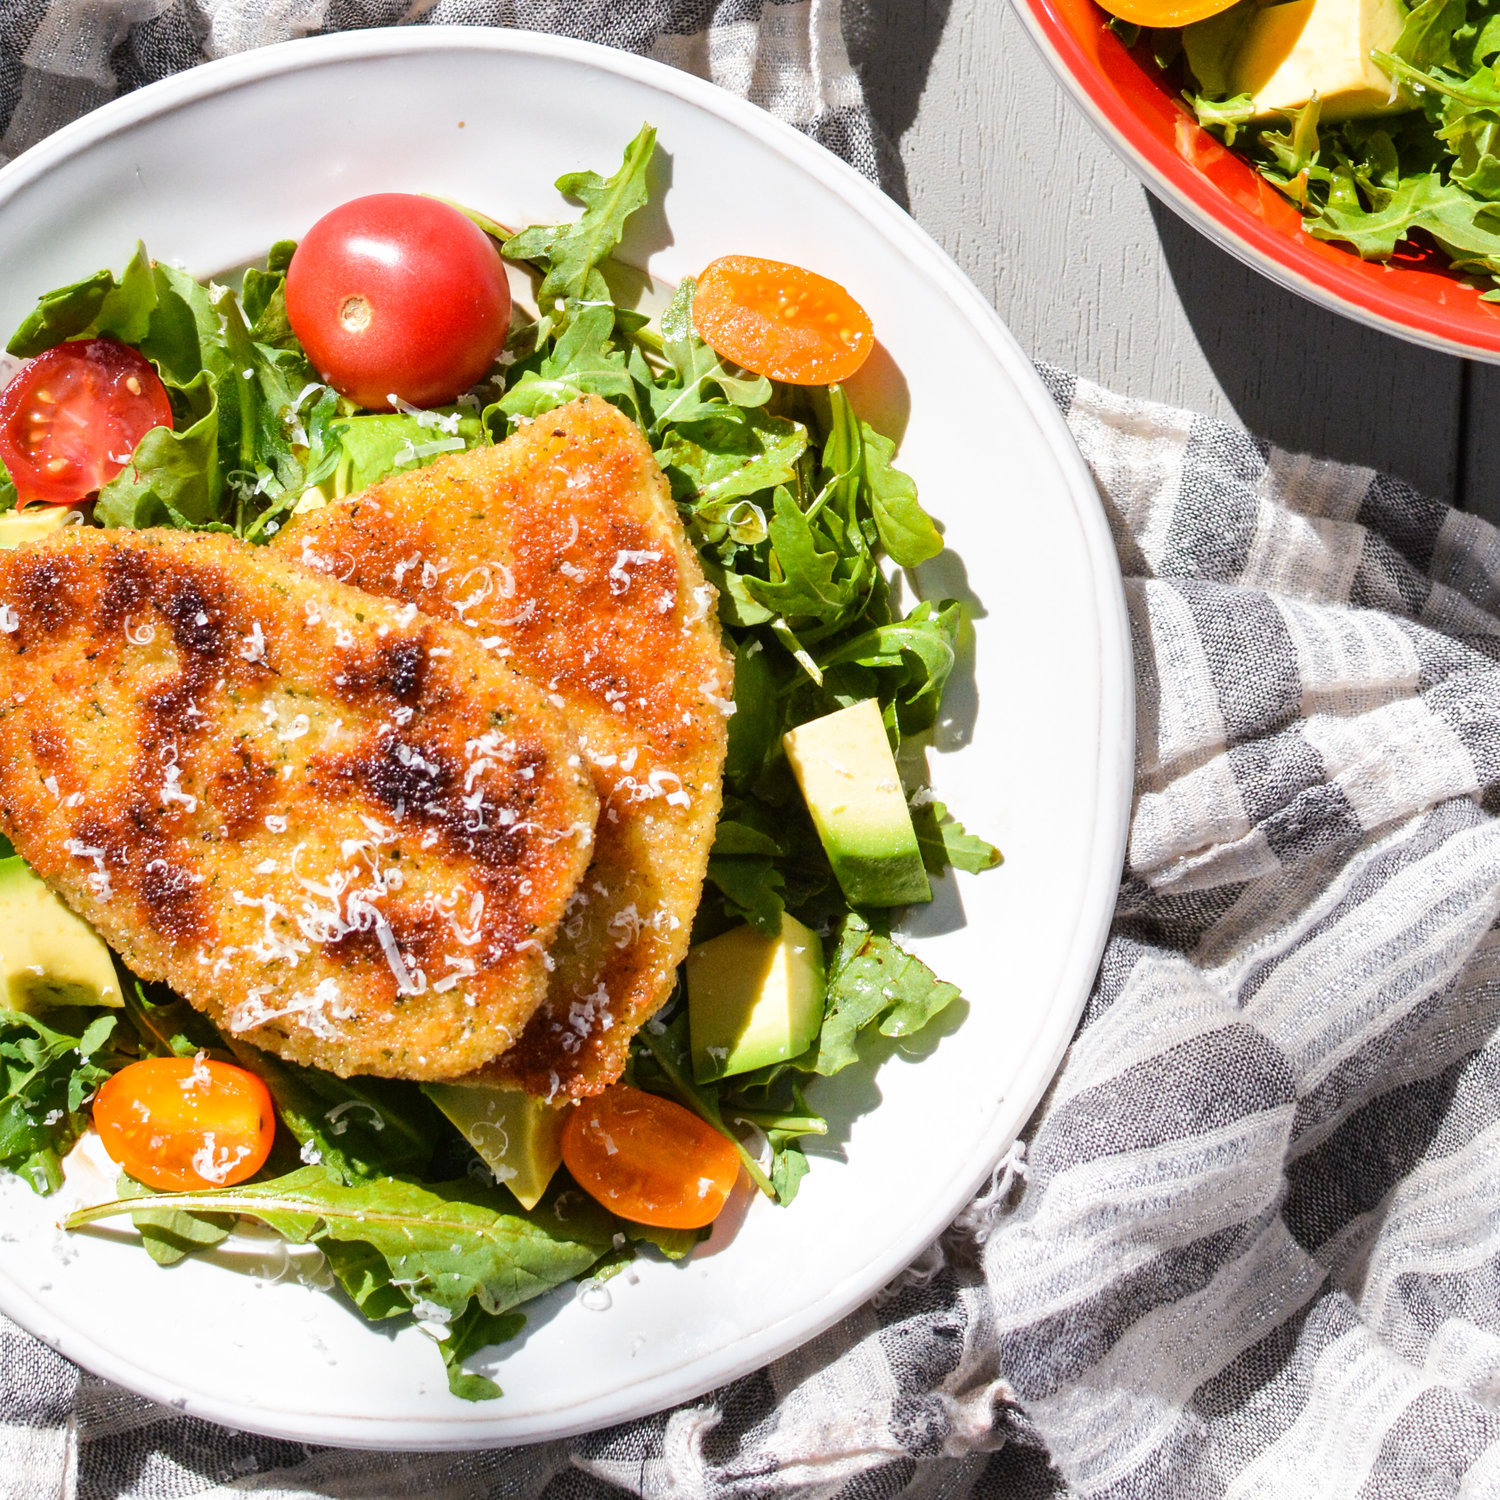 Fried Sweet Potato Cutlets with Arugula Salad